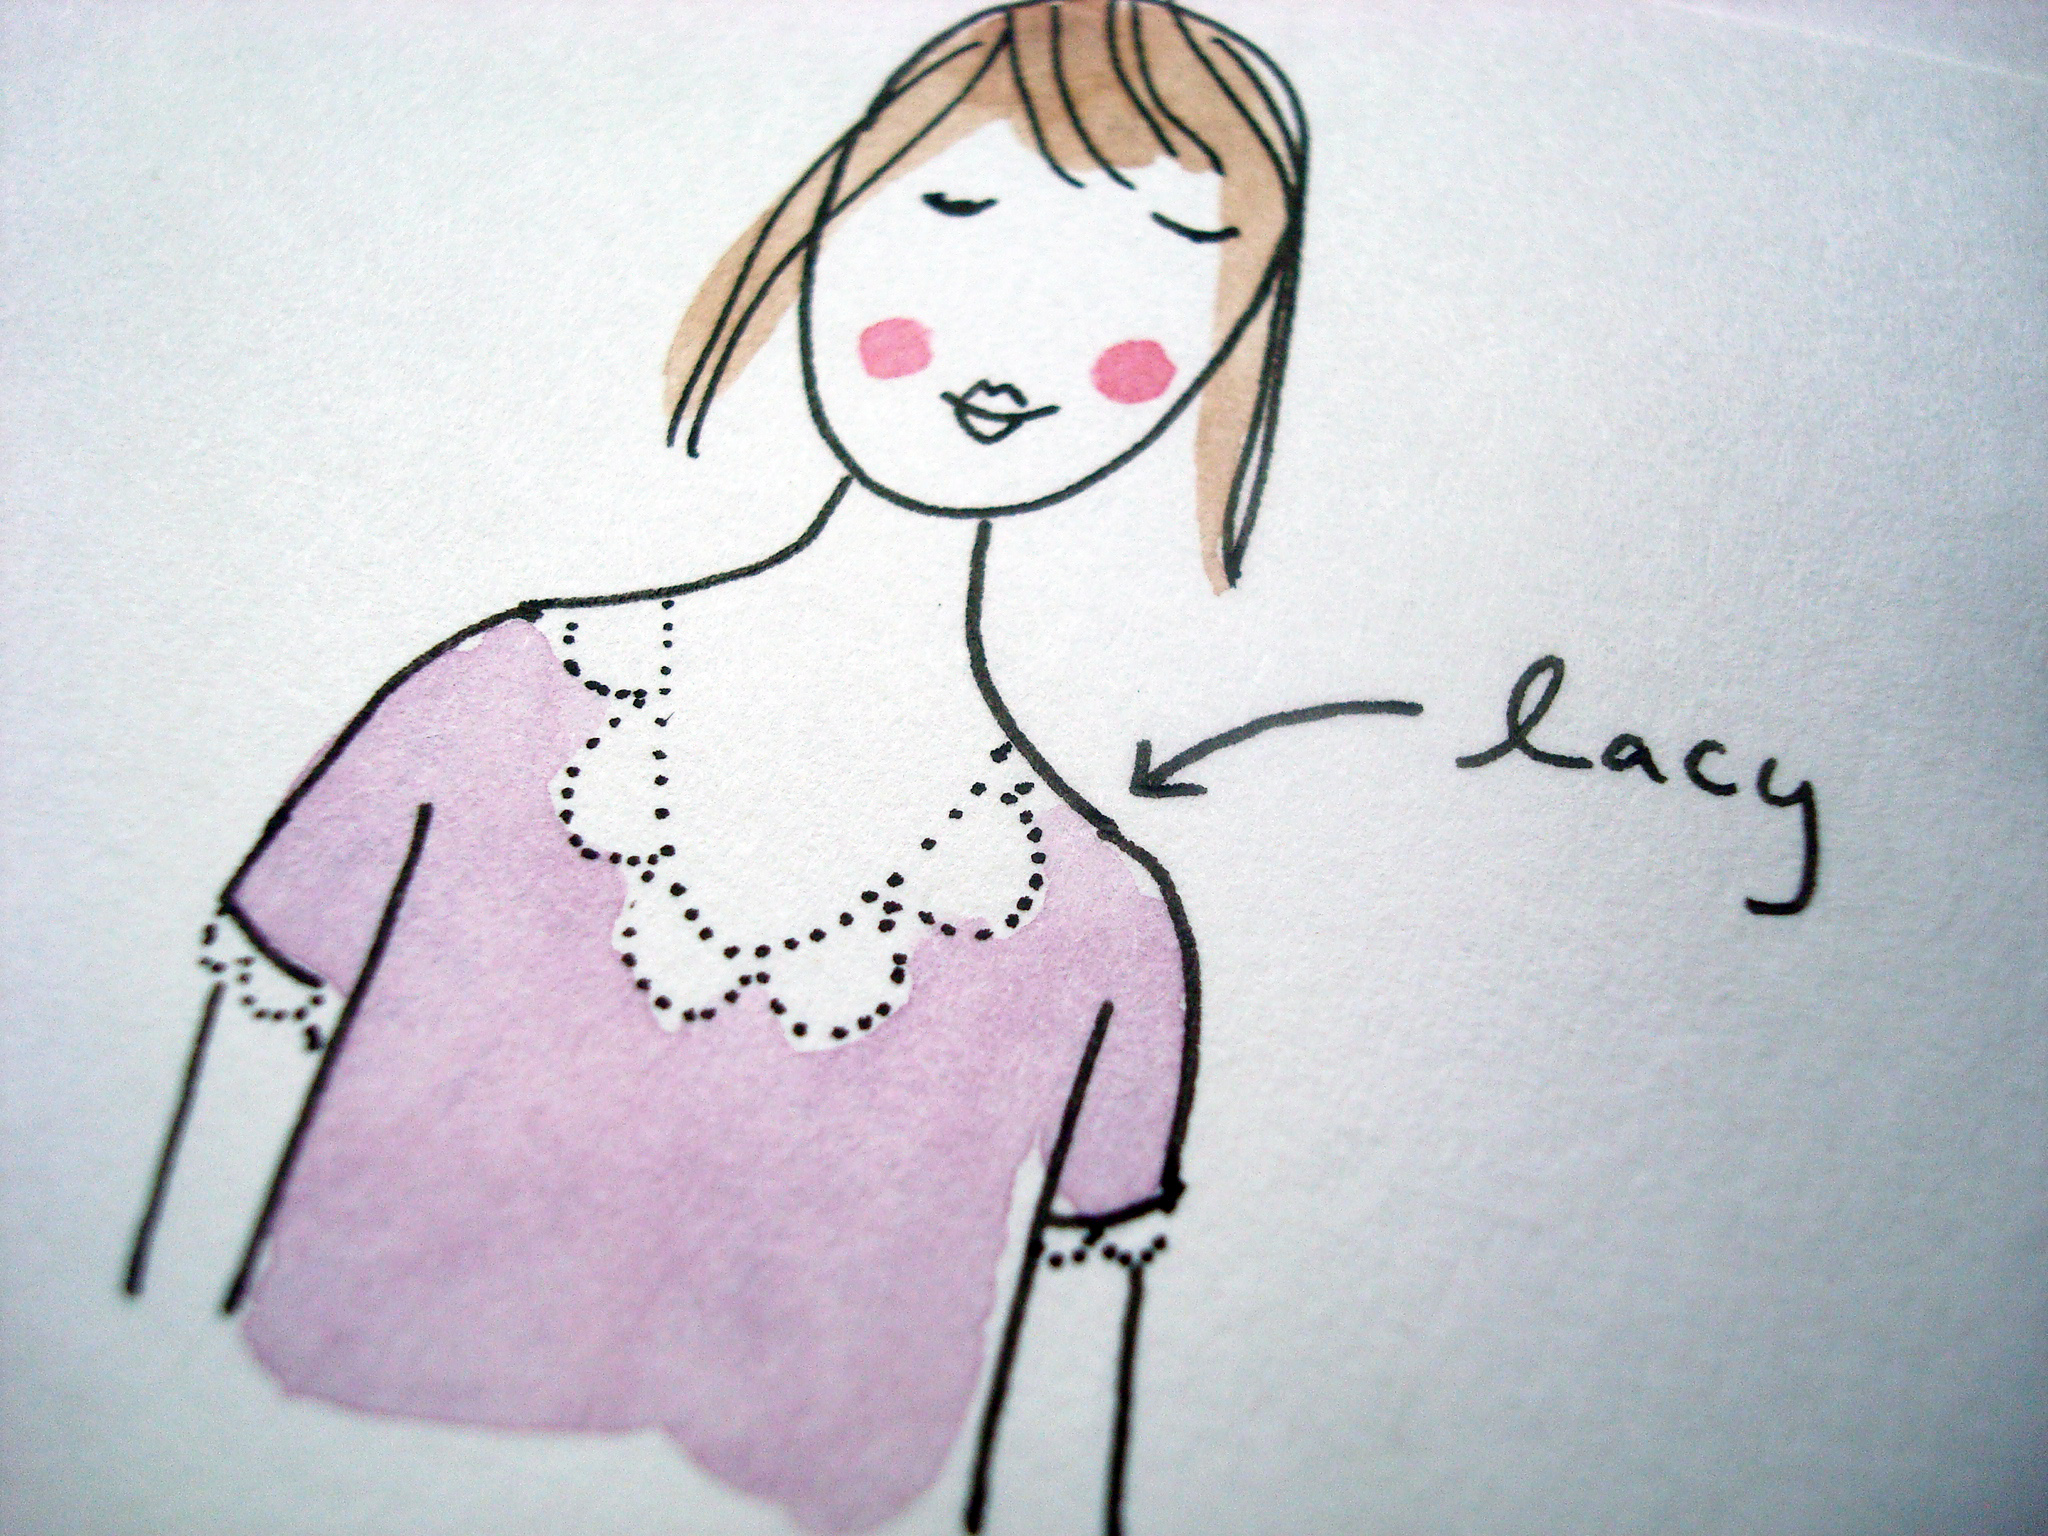 How to illustrate lacy clothing